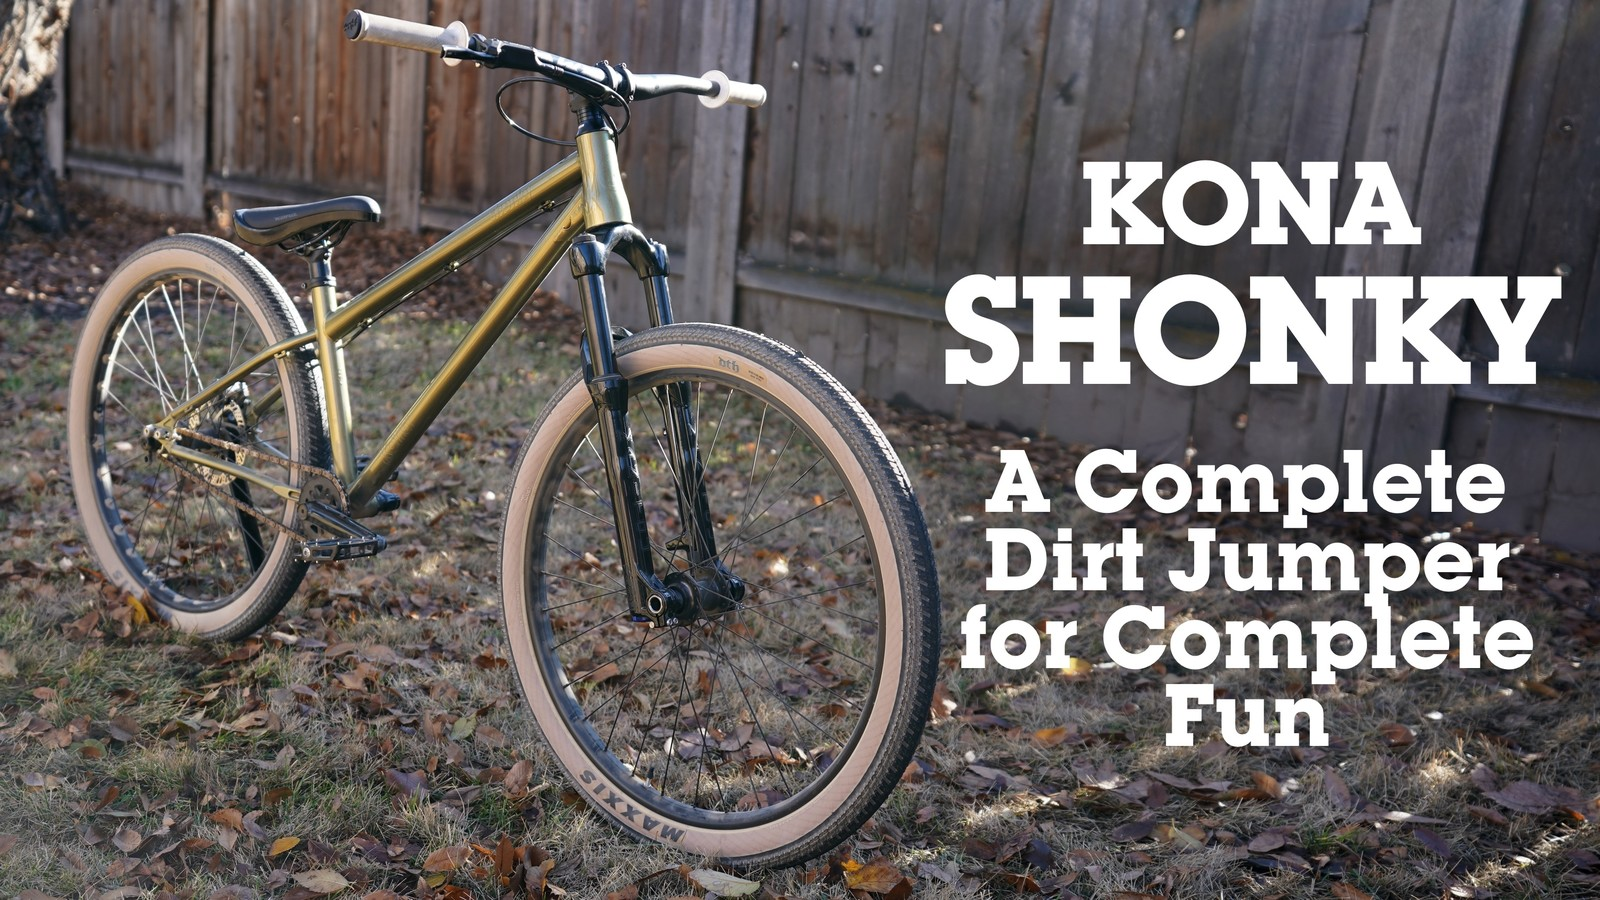 Kona Shonky Complete Build for Complete Fun